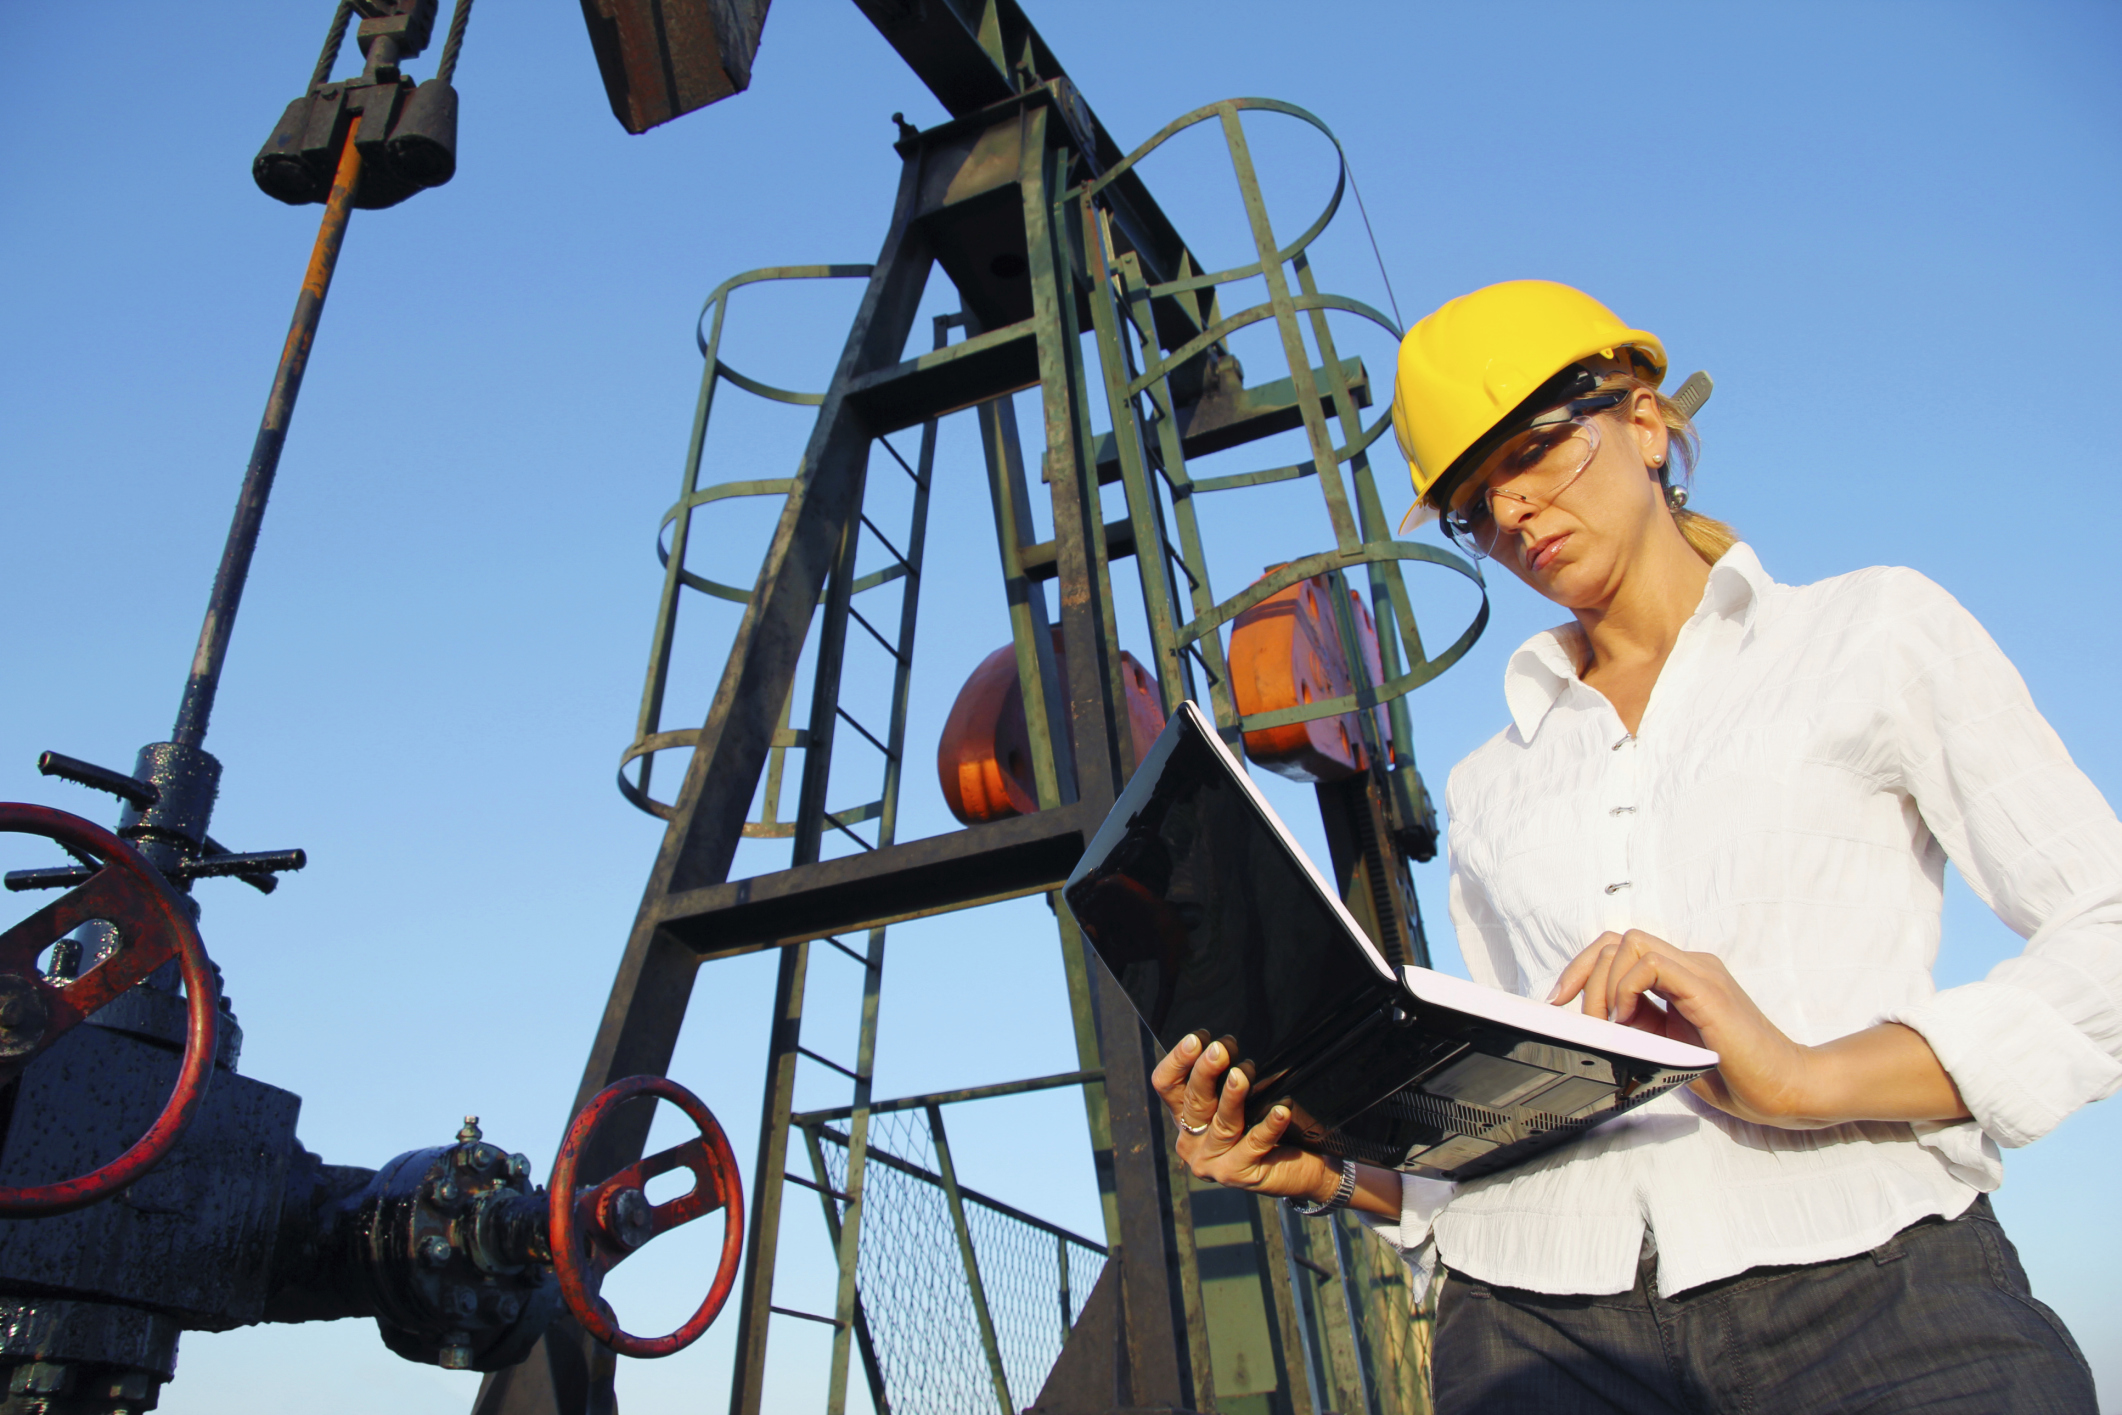 Petroleum Engineering Colleges >> Explore Biomedical Engineering, Other Hot Jobs for Future ...